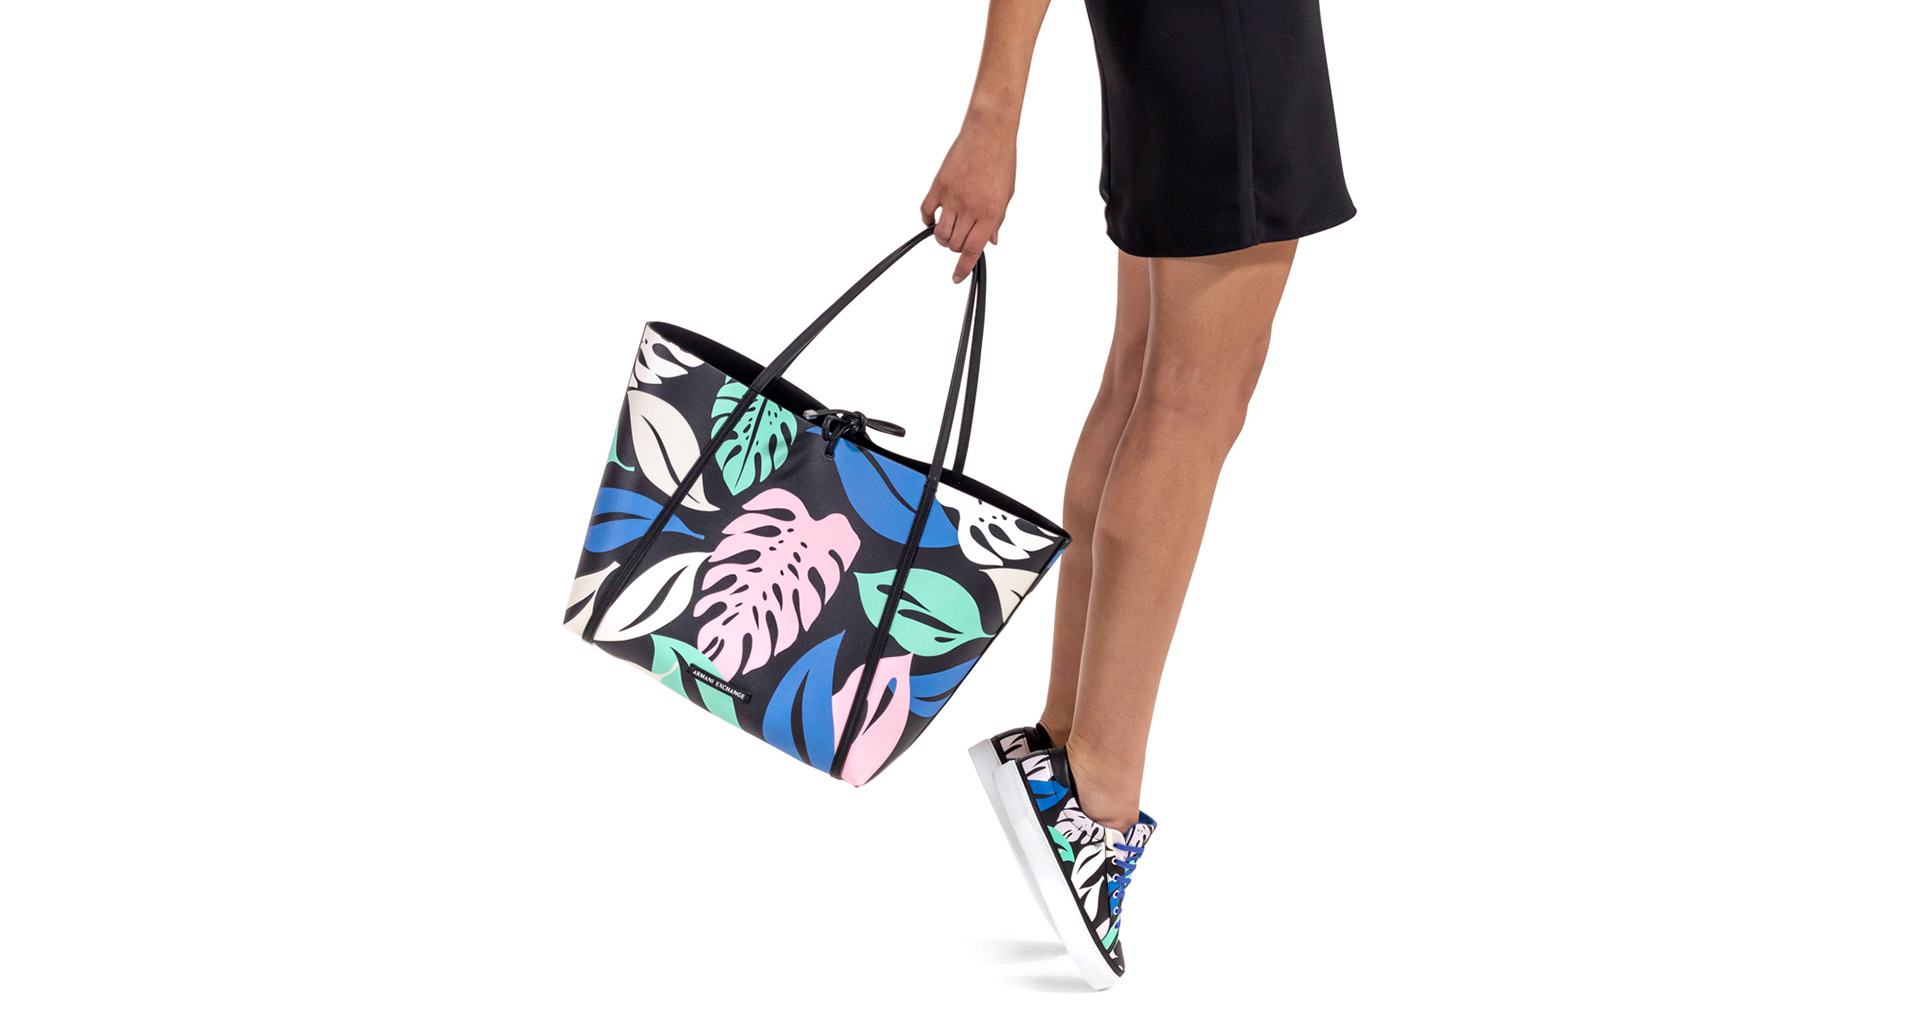 Product Photography, Ladies handbag and shoes